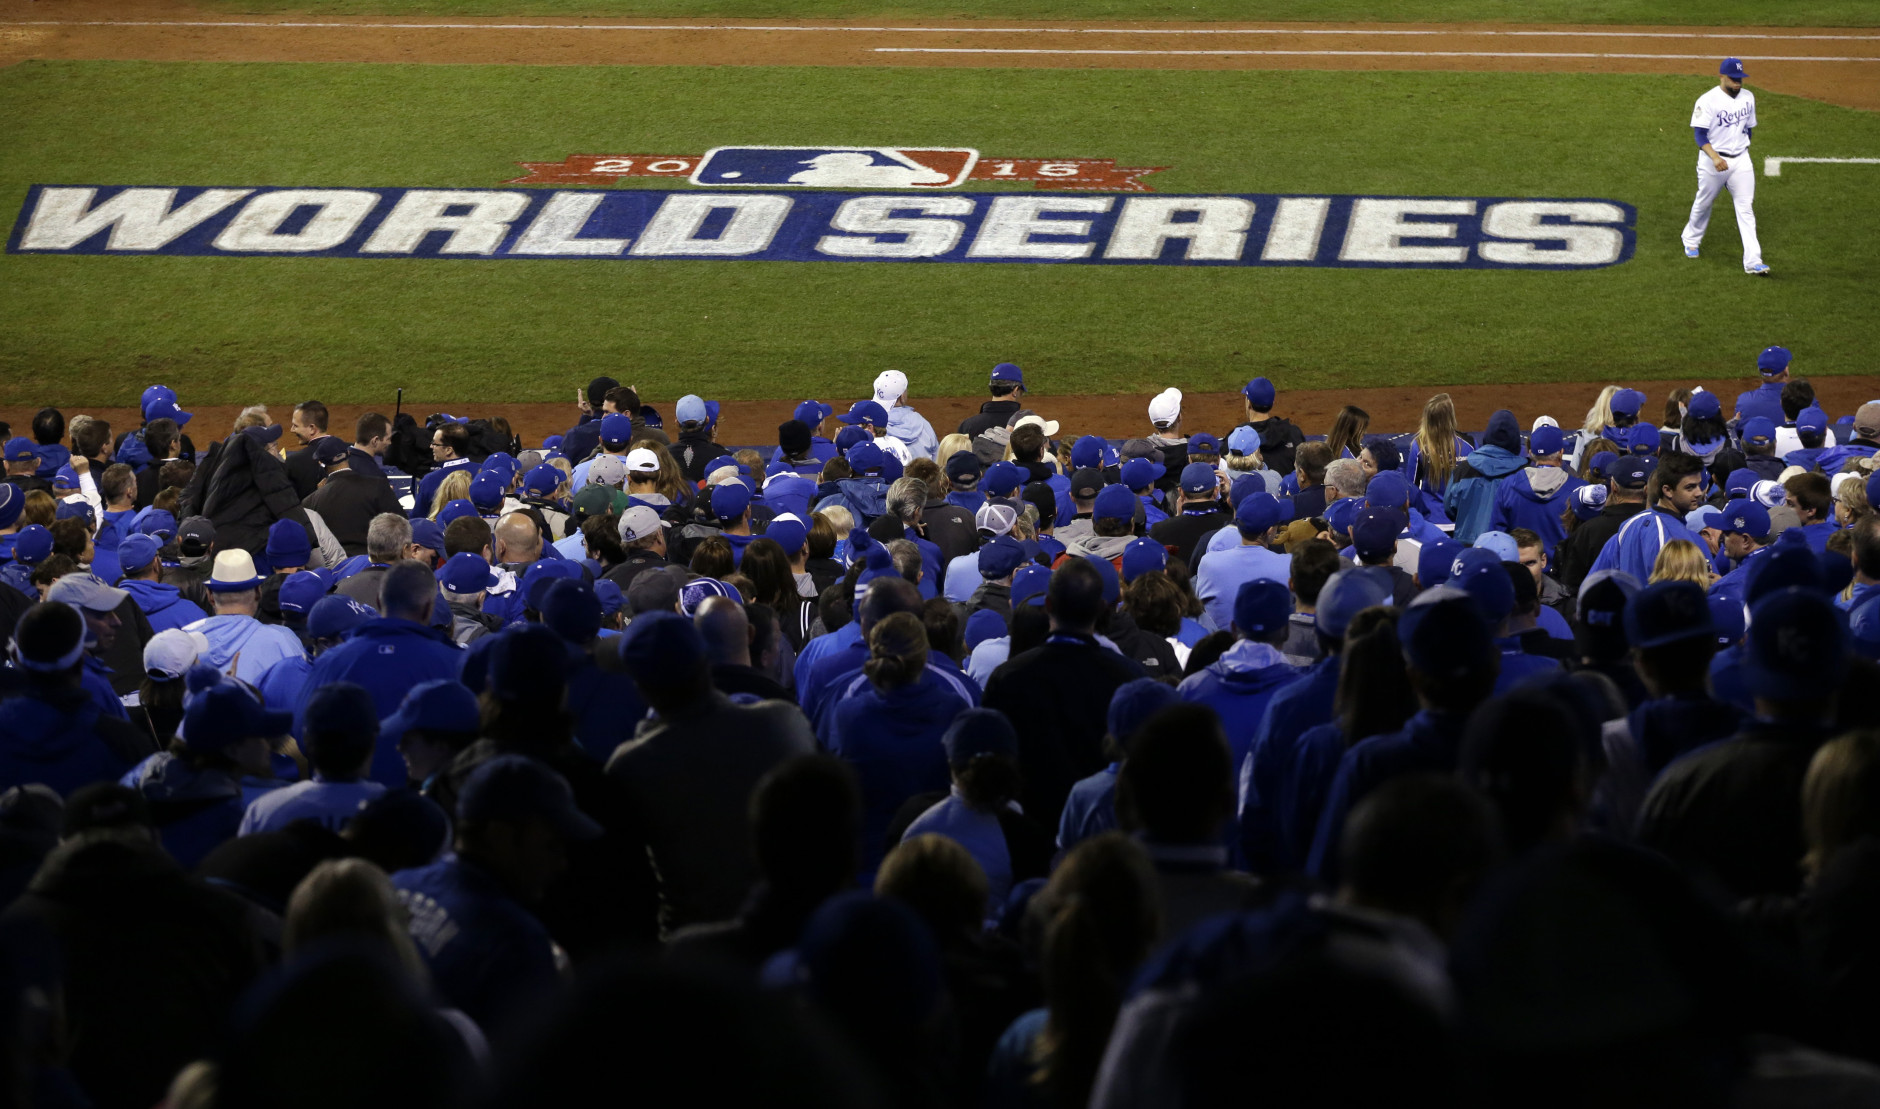 Kansas City Royals pitcher Kelvin Herrera walks back to dugout after the New York Mets scored a run during the eighth inning of Game 1 of the Major League Baseball World Series Tuesday, Oct. 27, 2015, in Kansas City, Mo. (AP Photo/David Goldman)